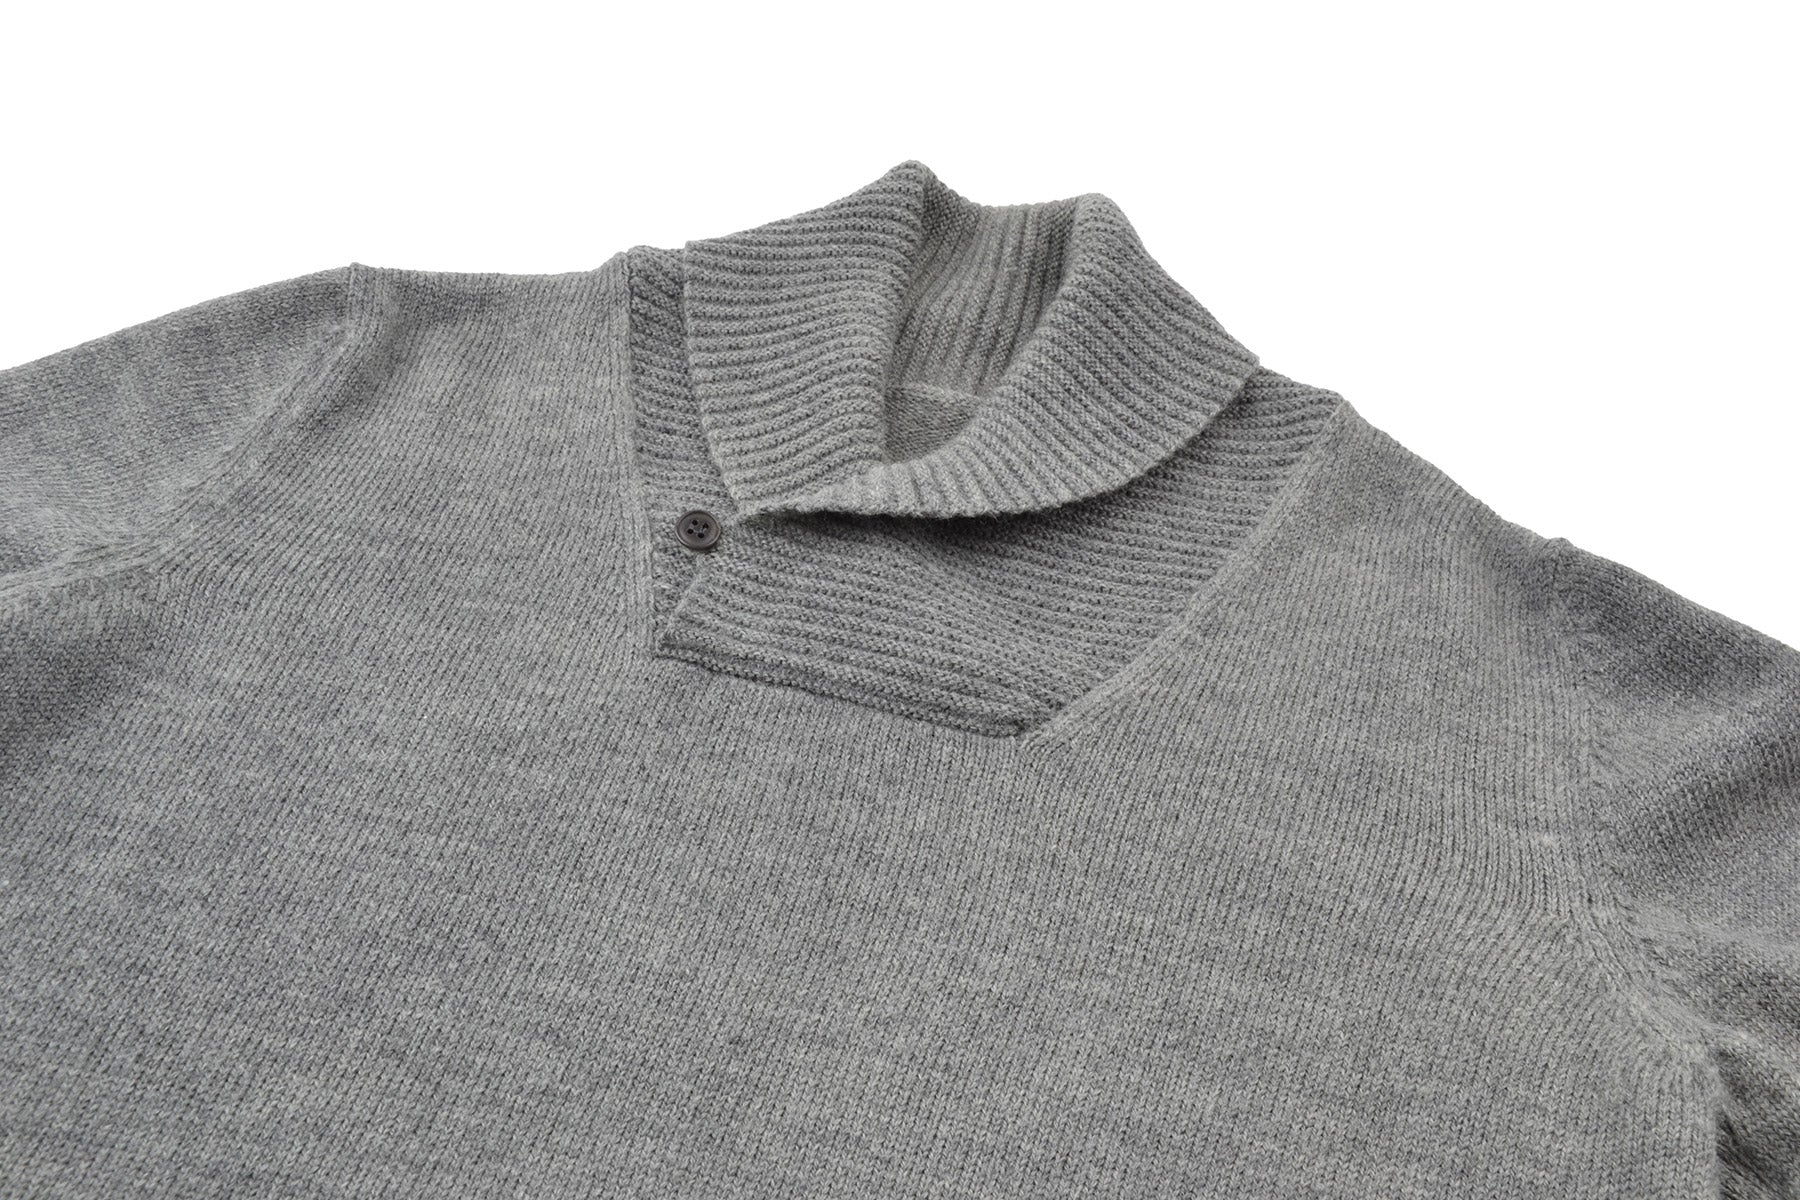 2004 A/W SHAWL COLLAR WOOL SWEATER IN MELANGE GREY